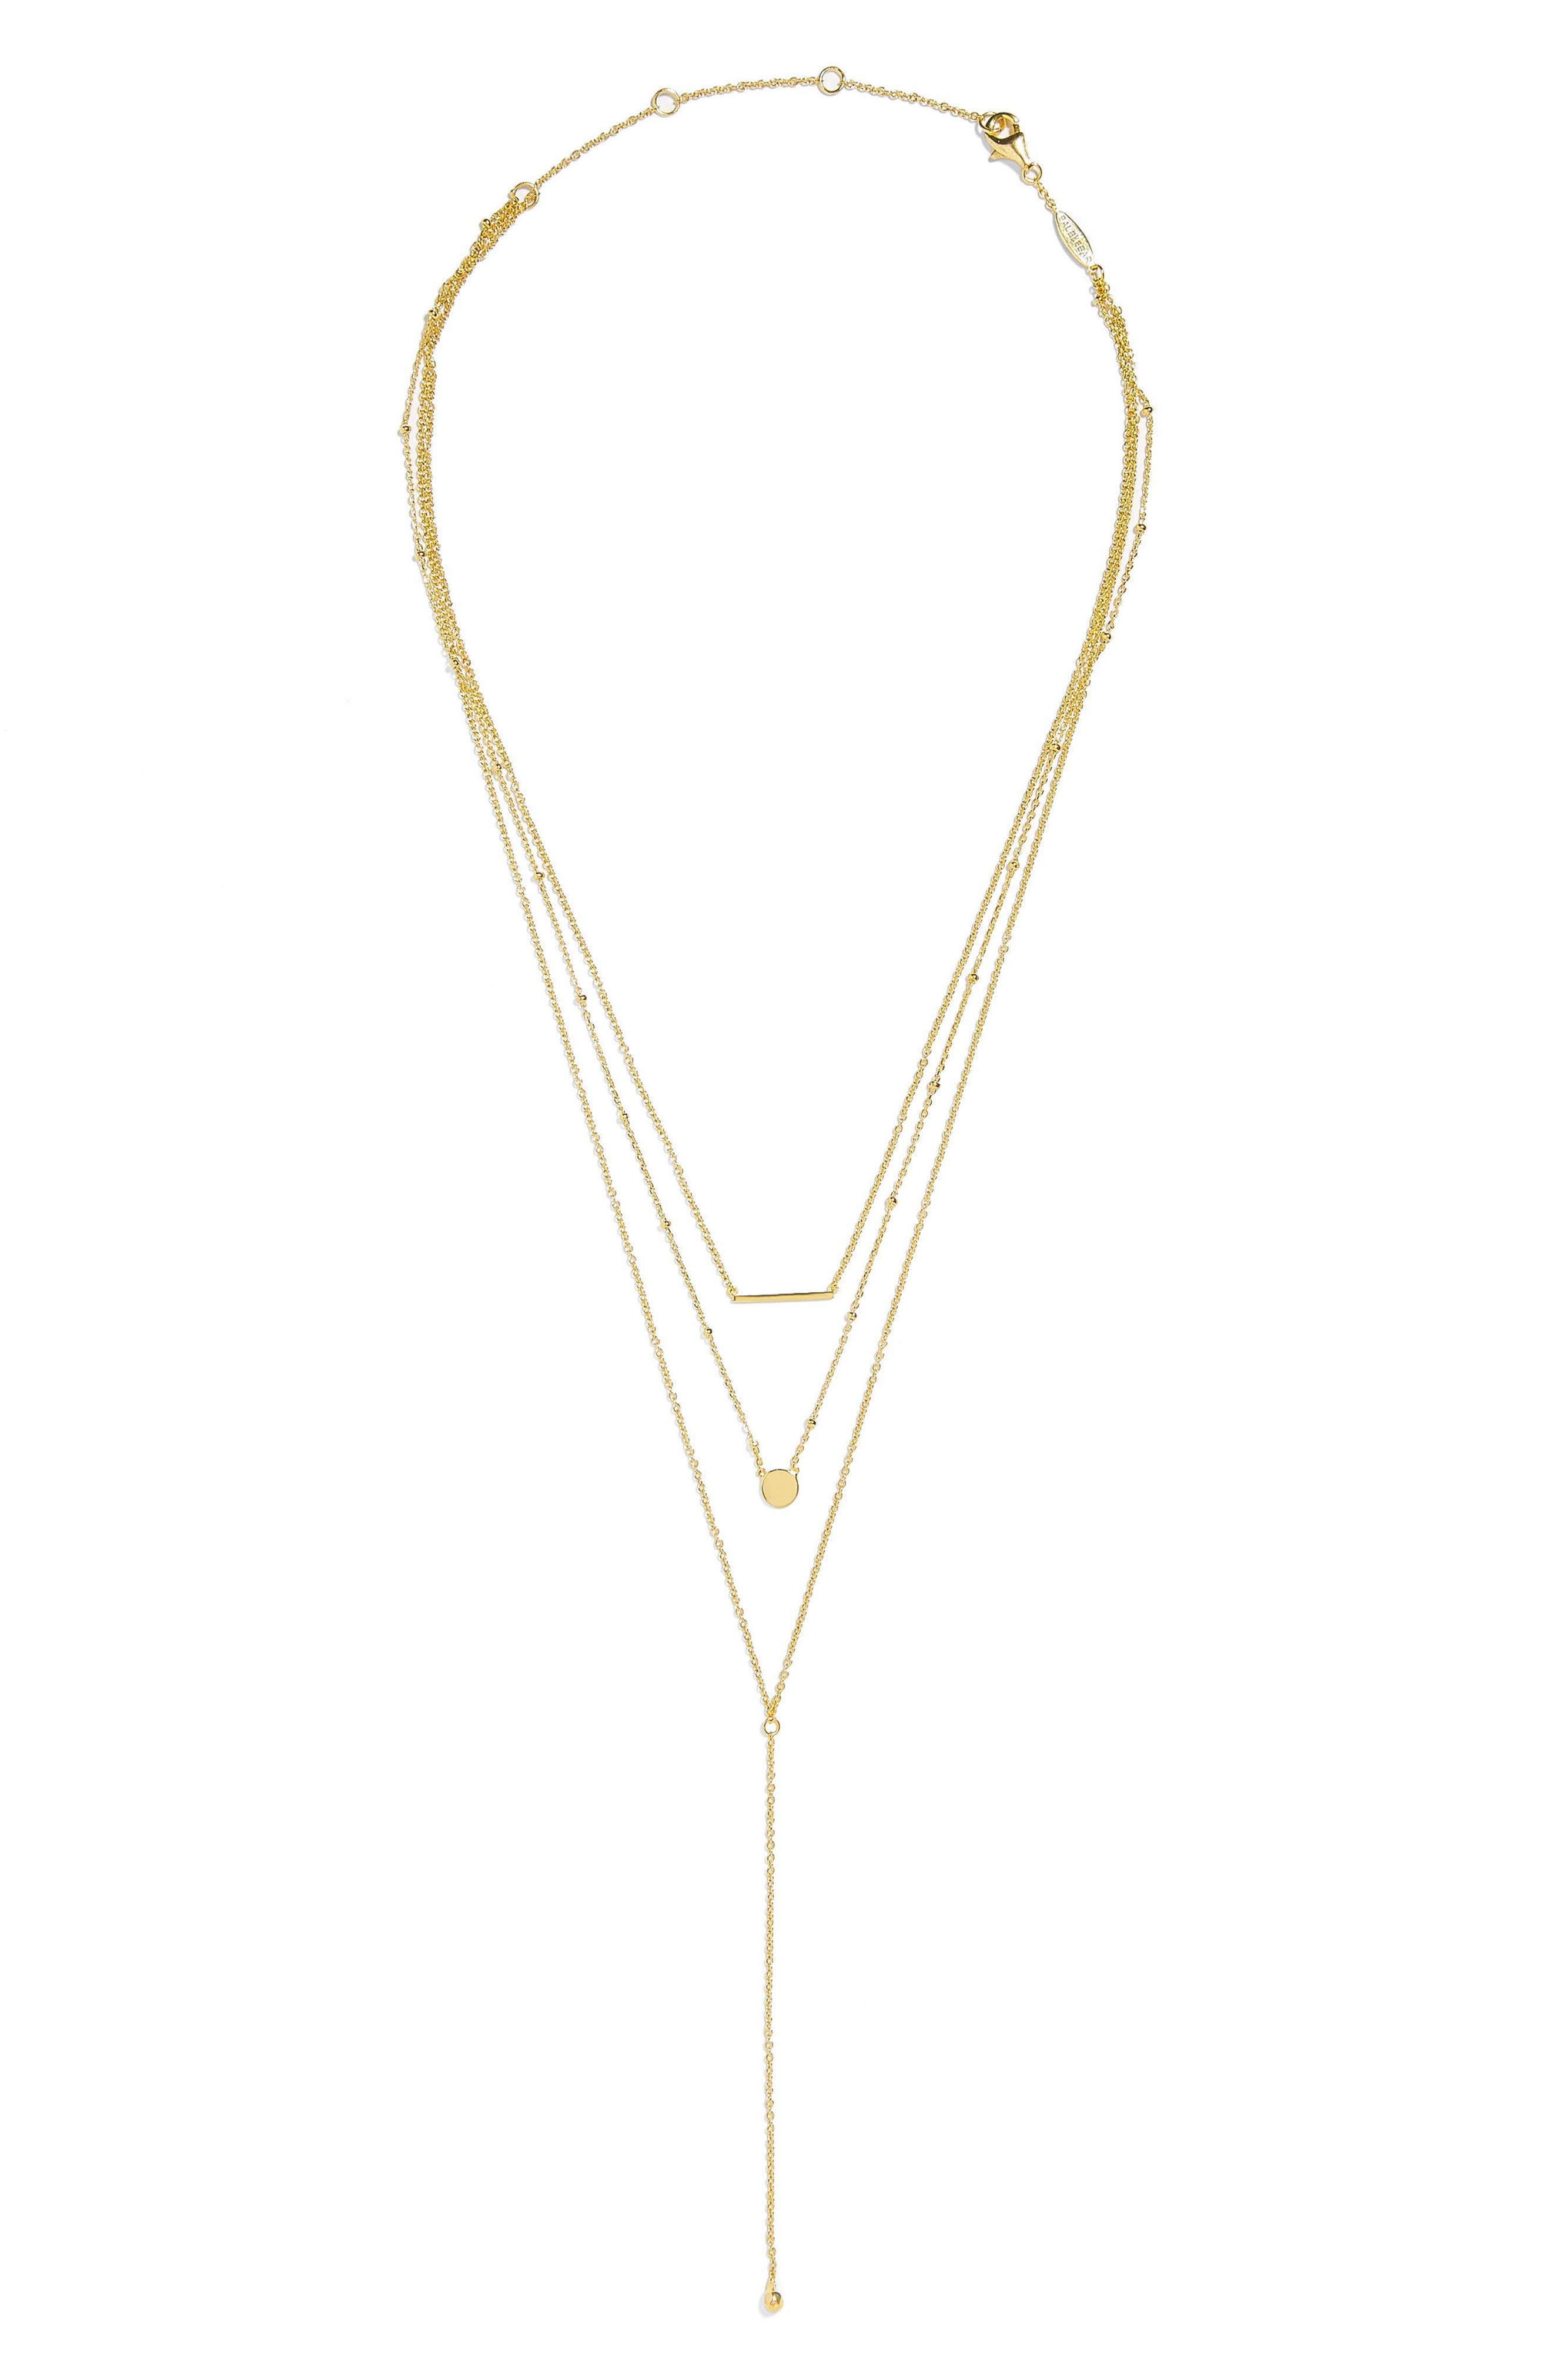 Viva Everyday Fine Layered Pendant Necklace,                         Main,                         color, Gold